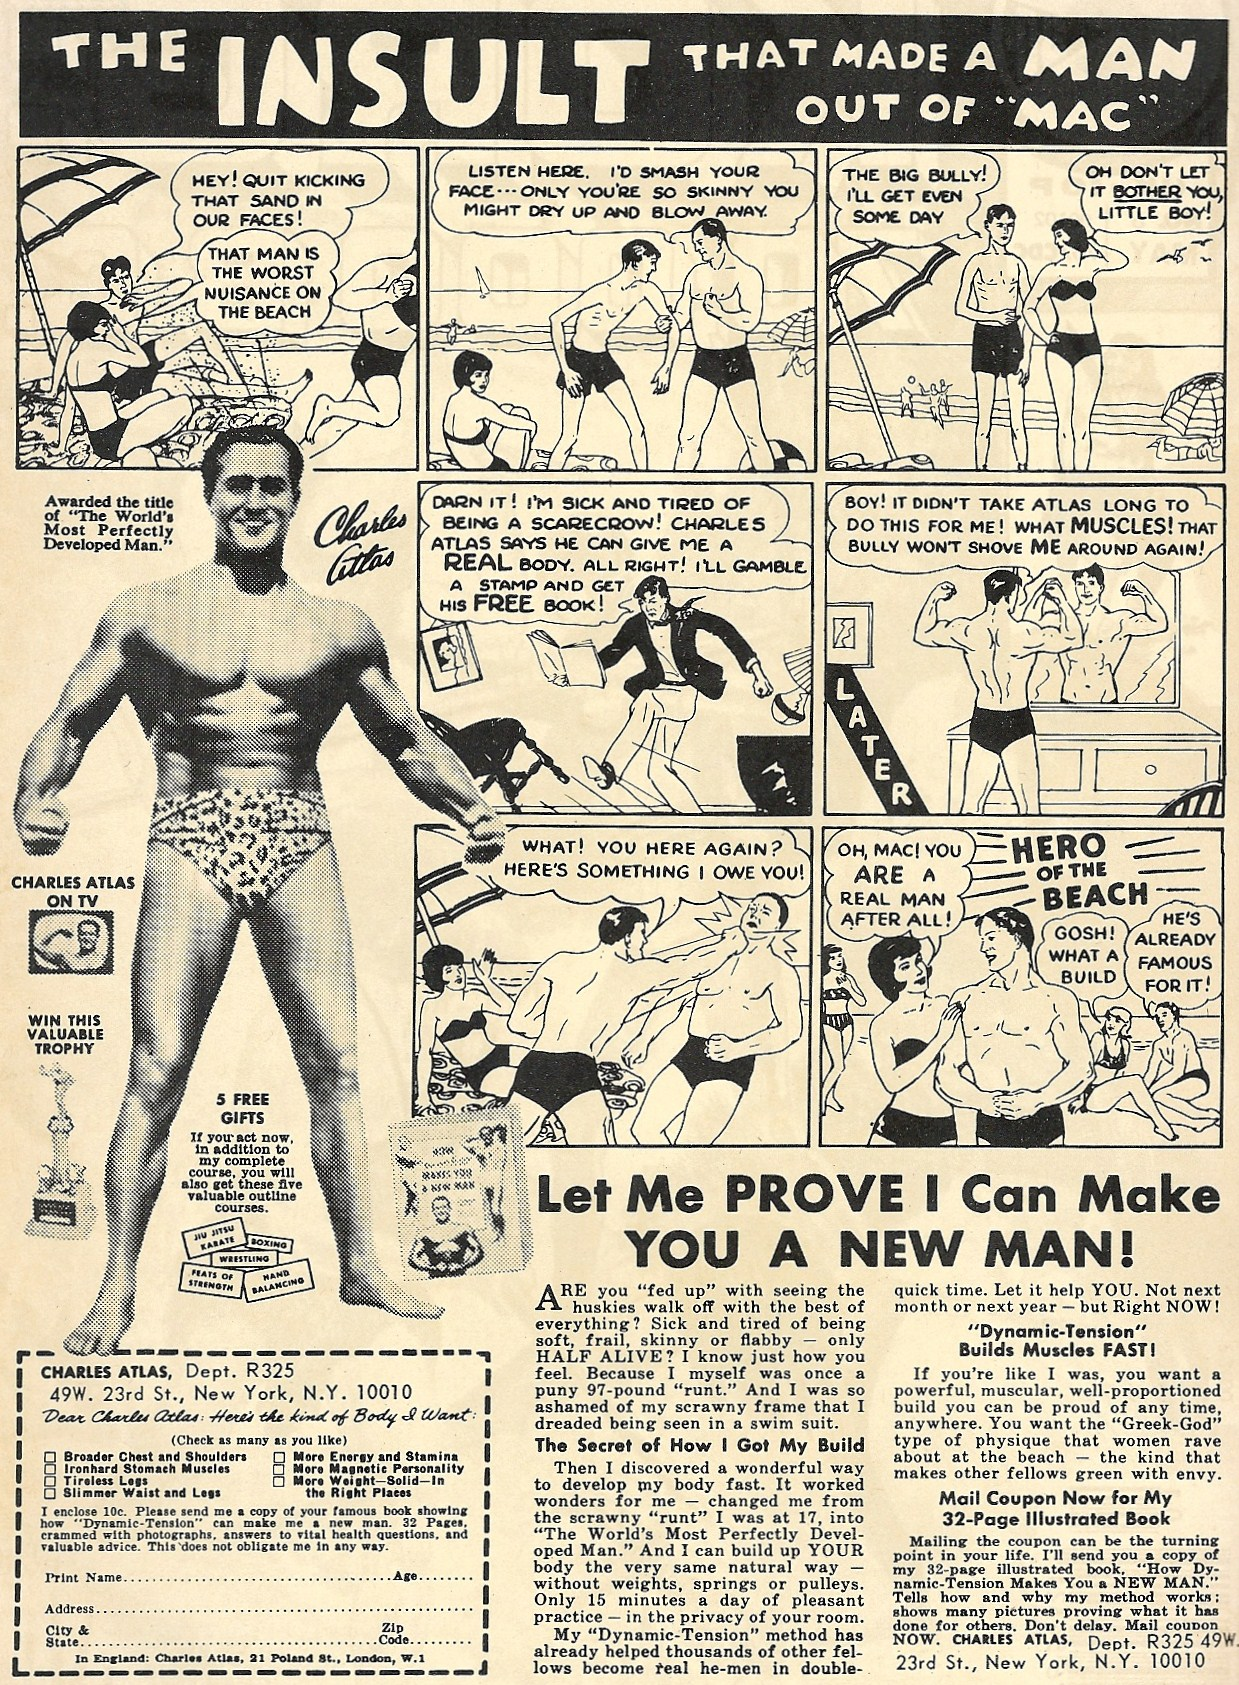 Perhaps the most iconic Charles Atlas ad of them all (click to enlarge).